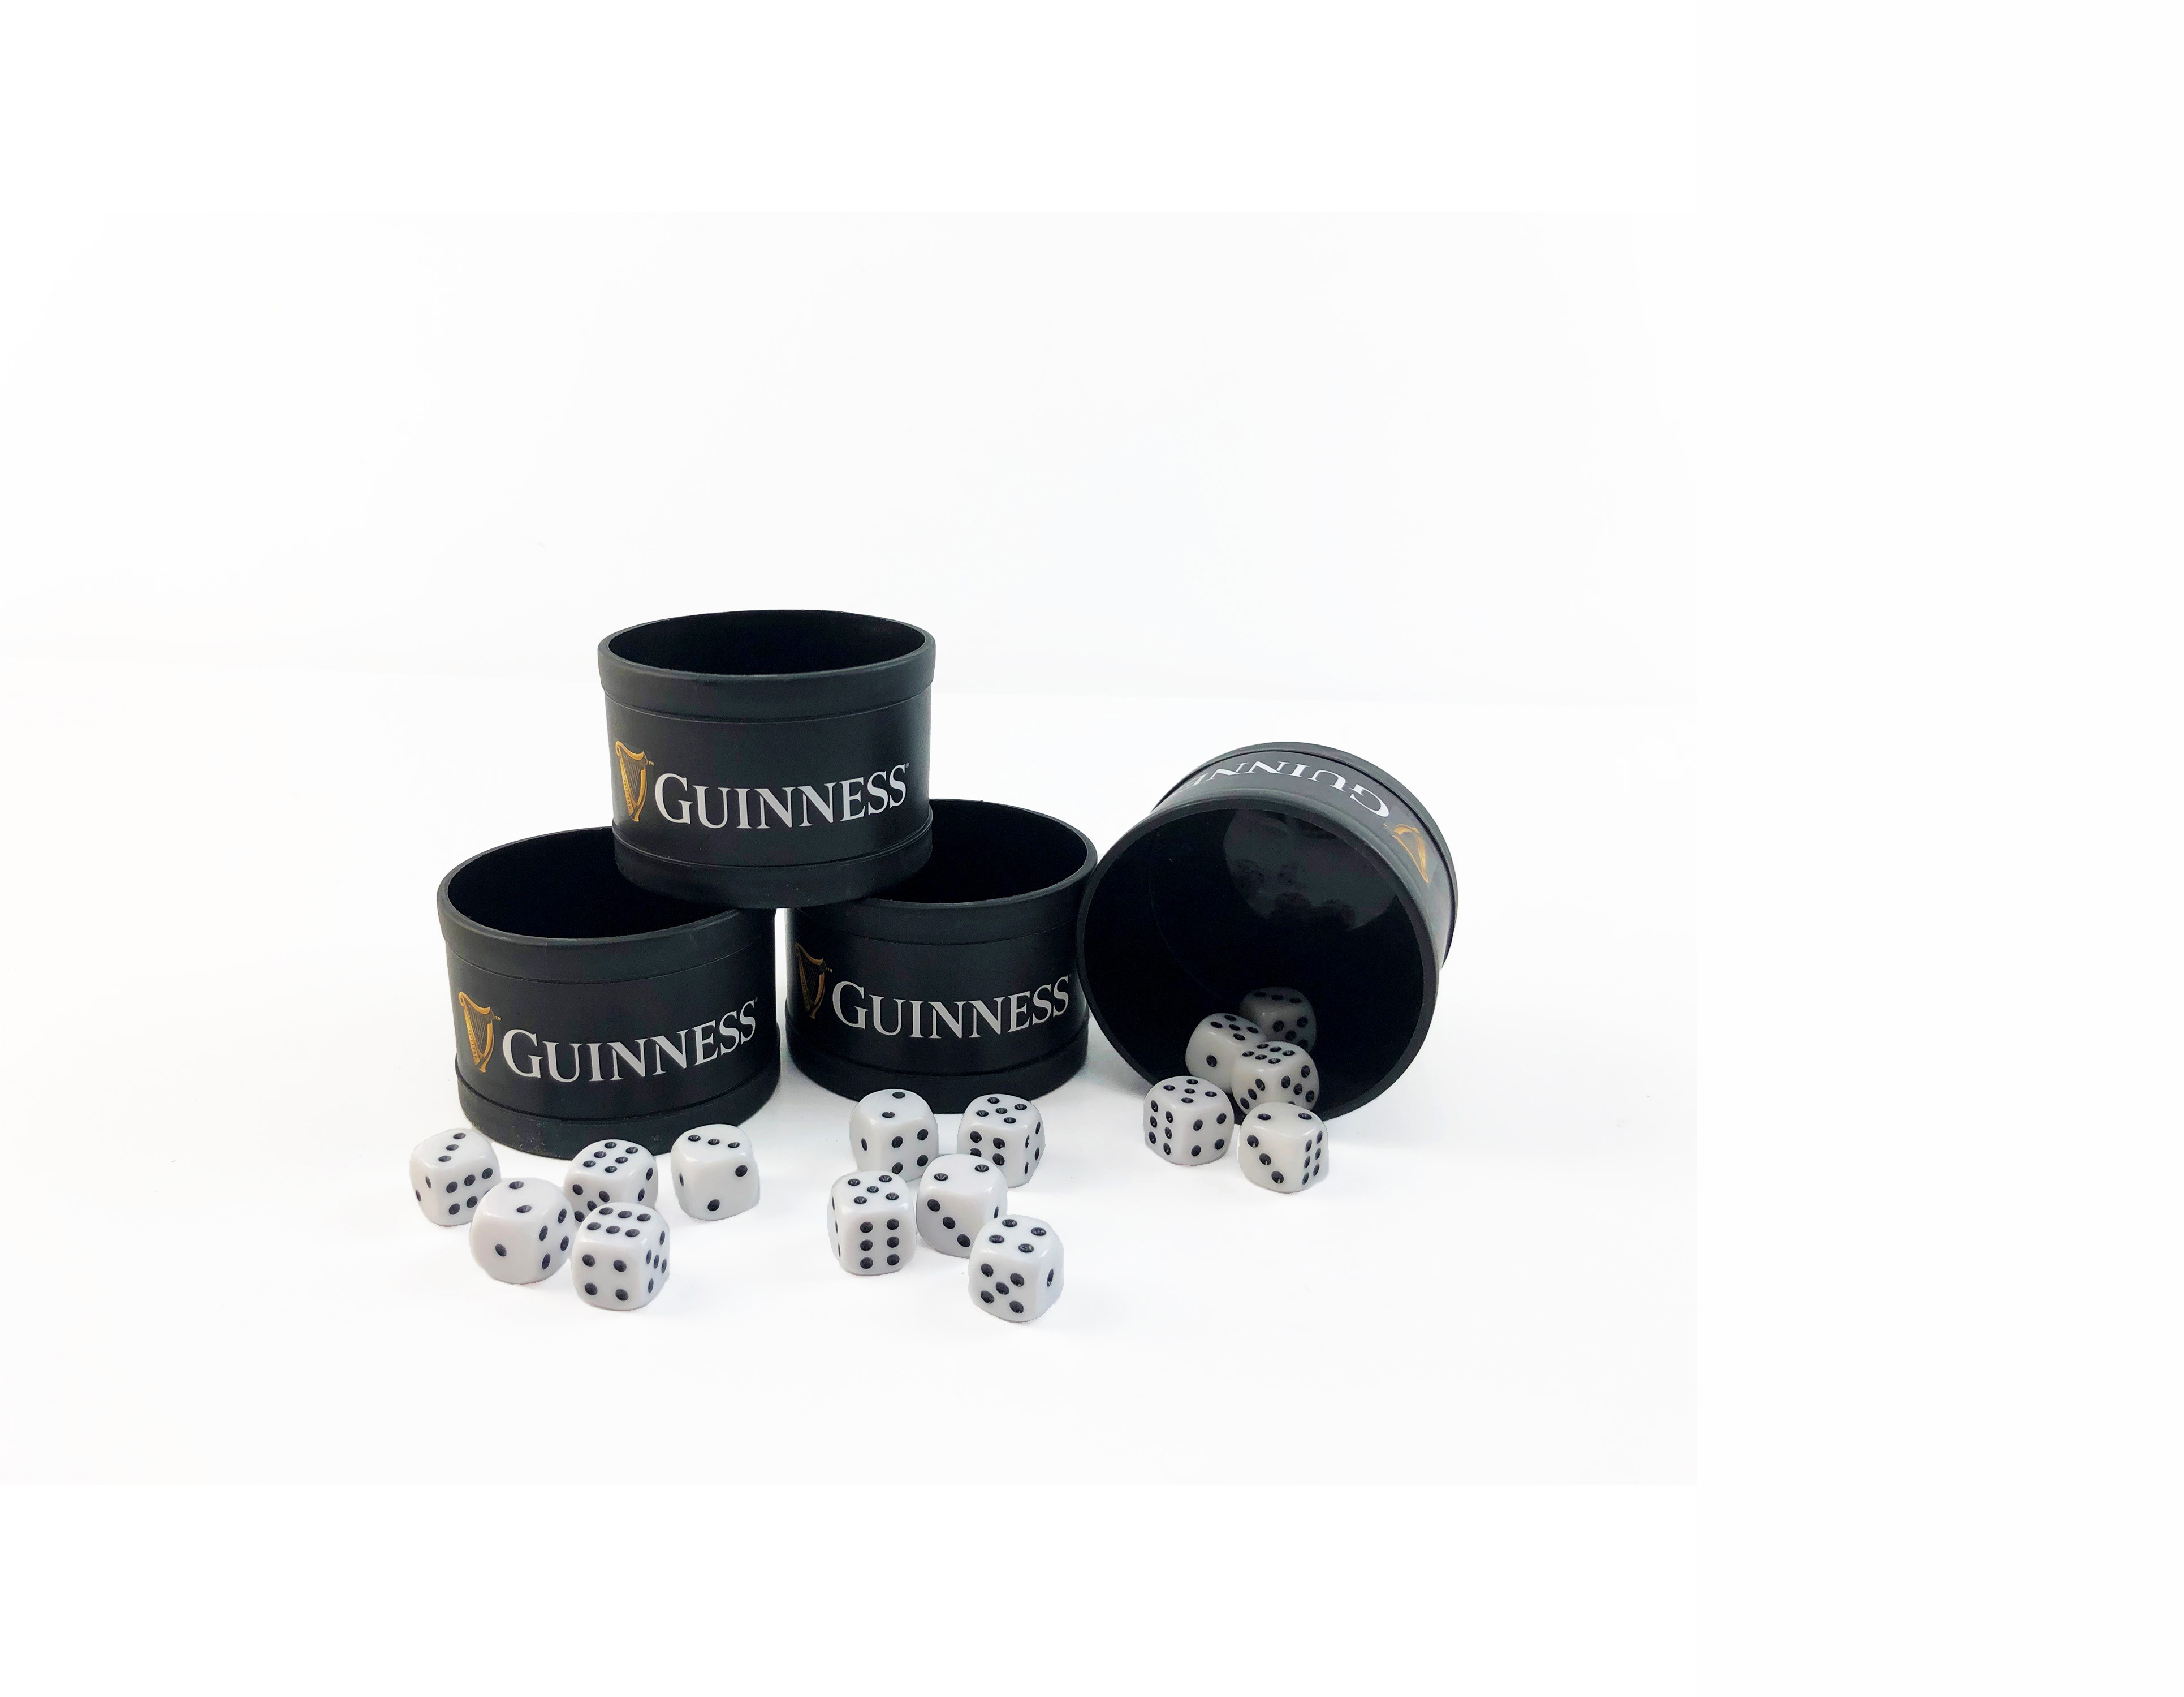 Guinness Liars Dice components